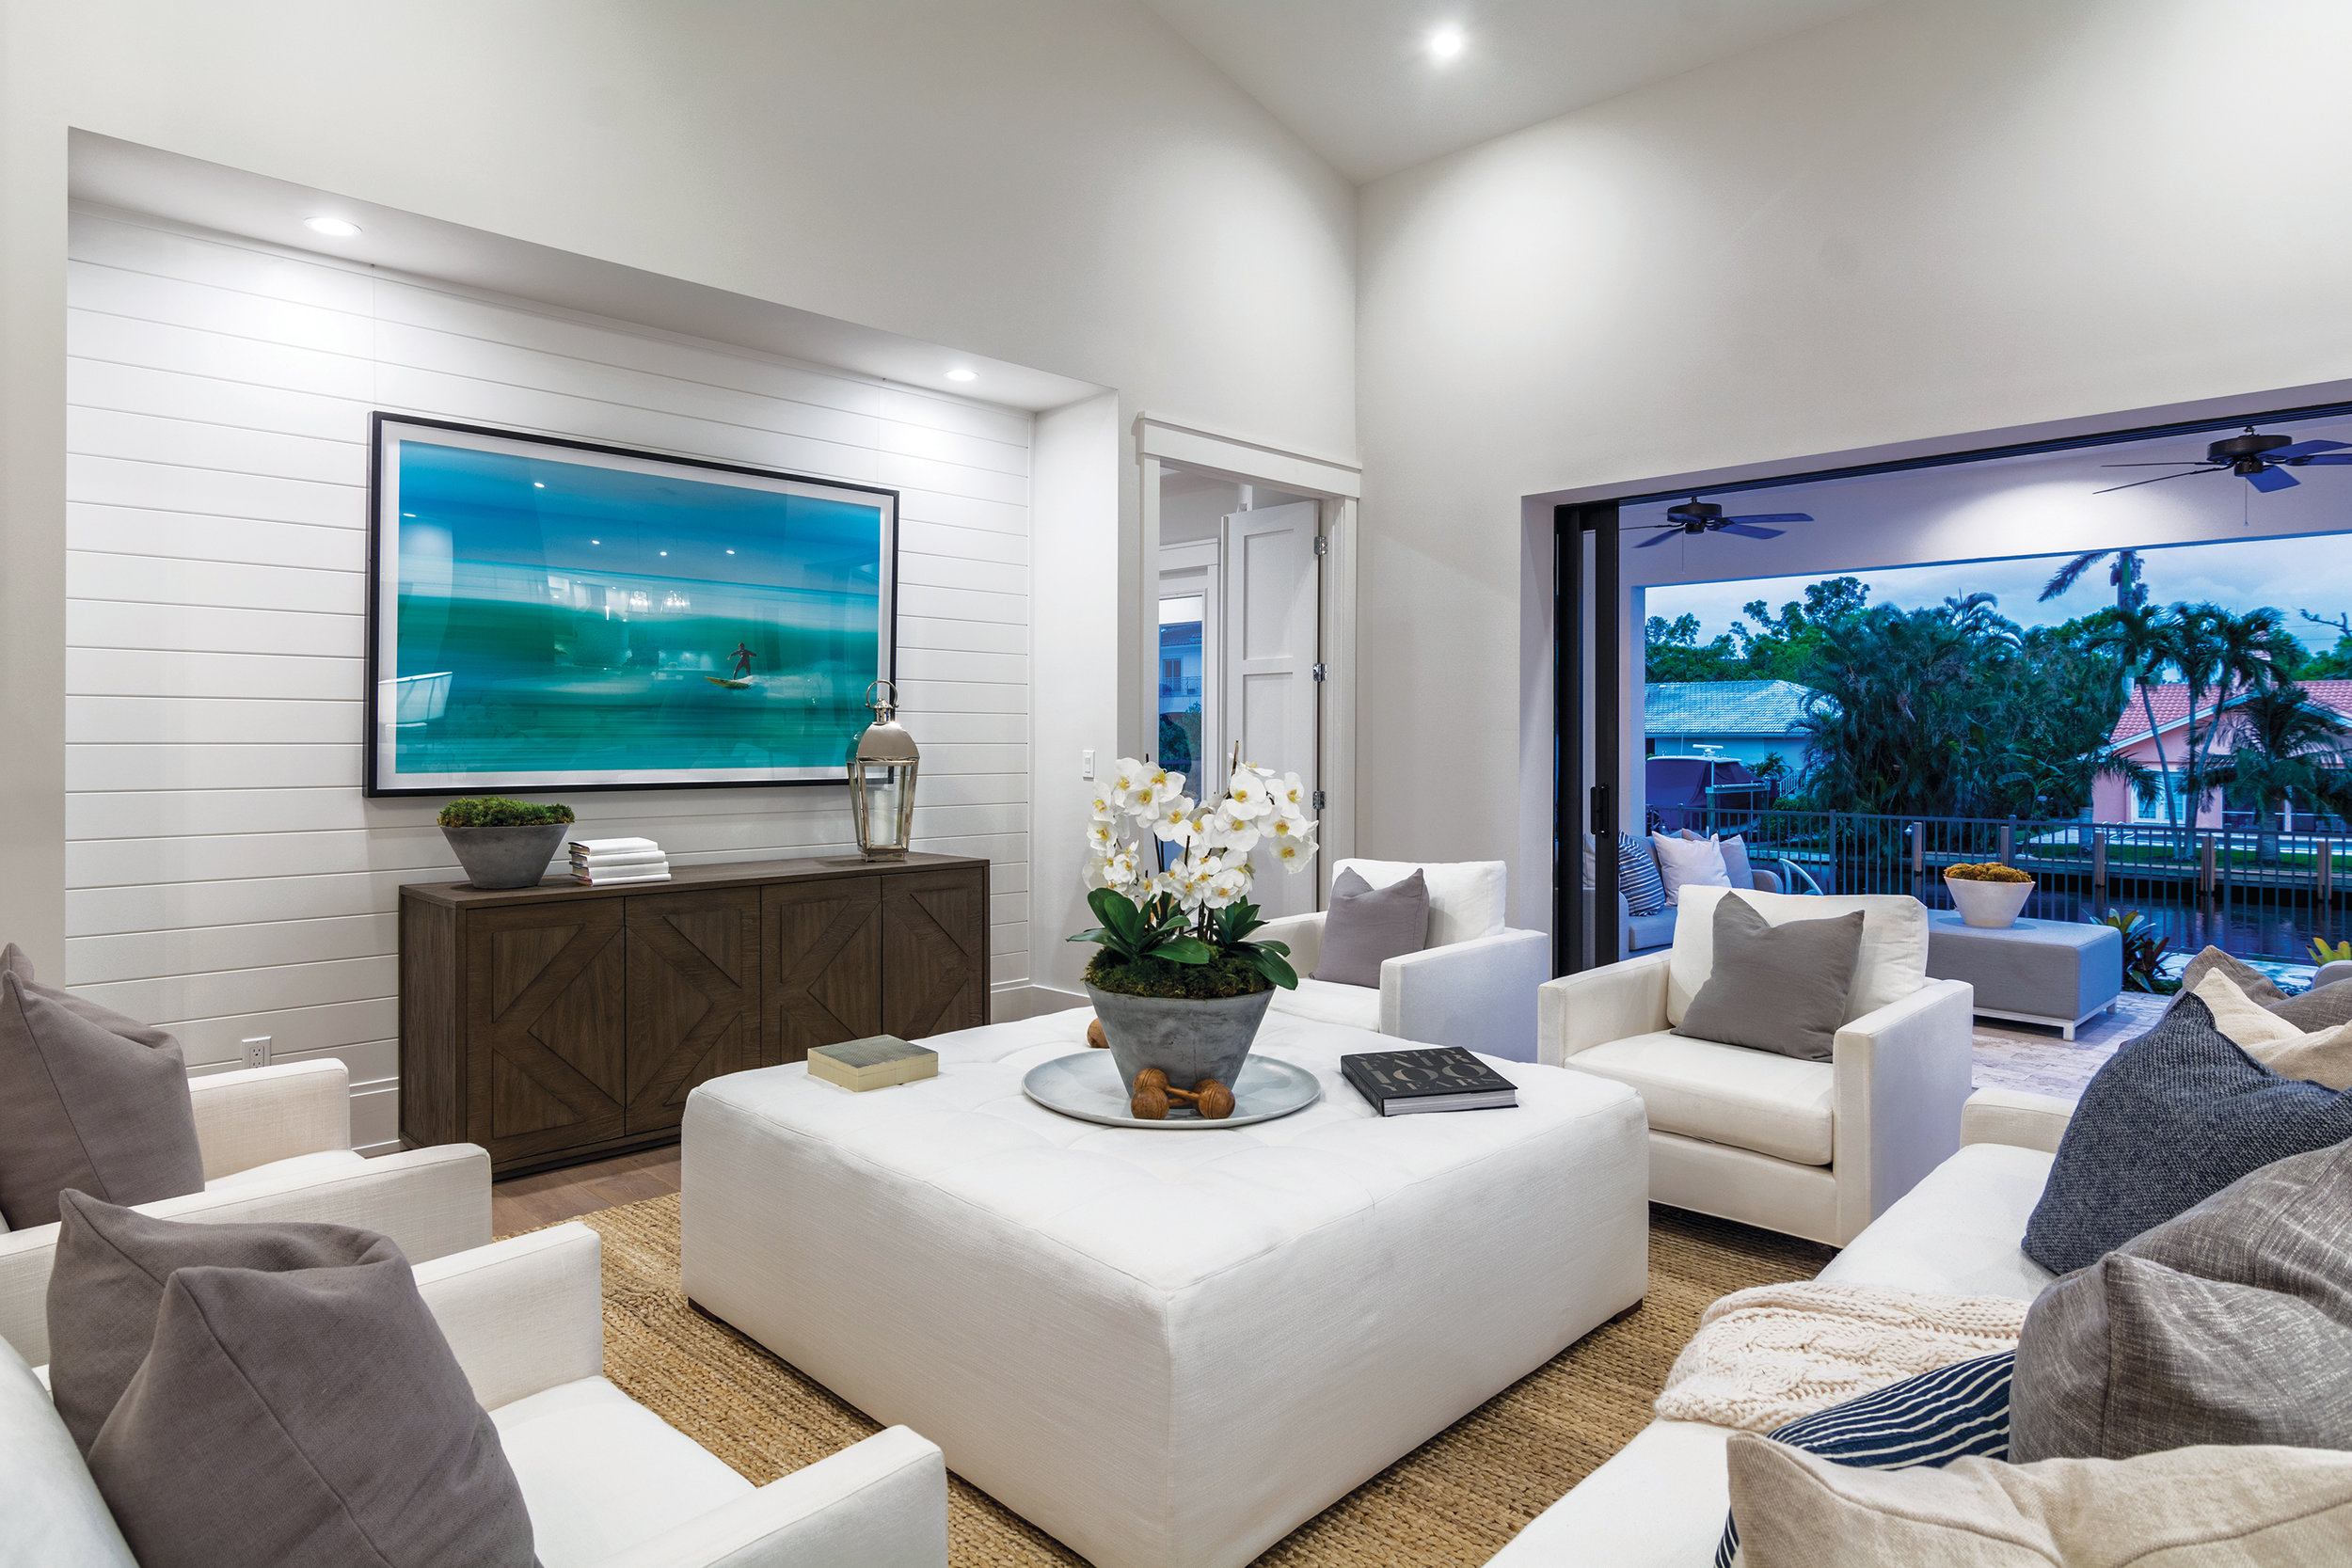 Special details like the shiplap in the recessed media area create a coastal feel that fits the home's location in Aqualane Shores.